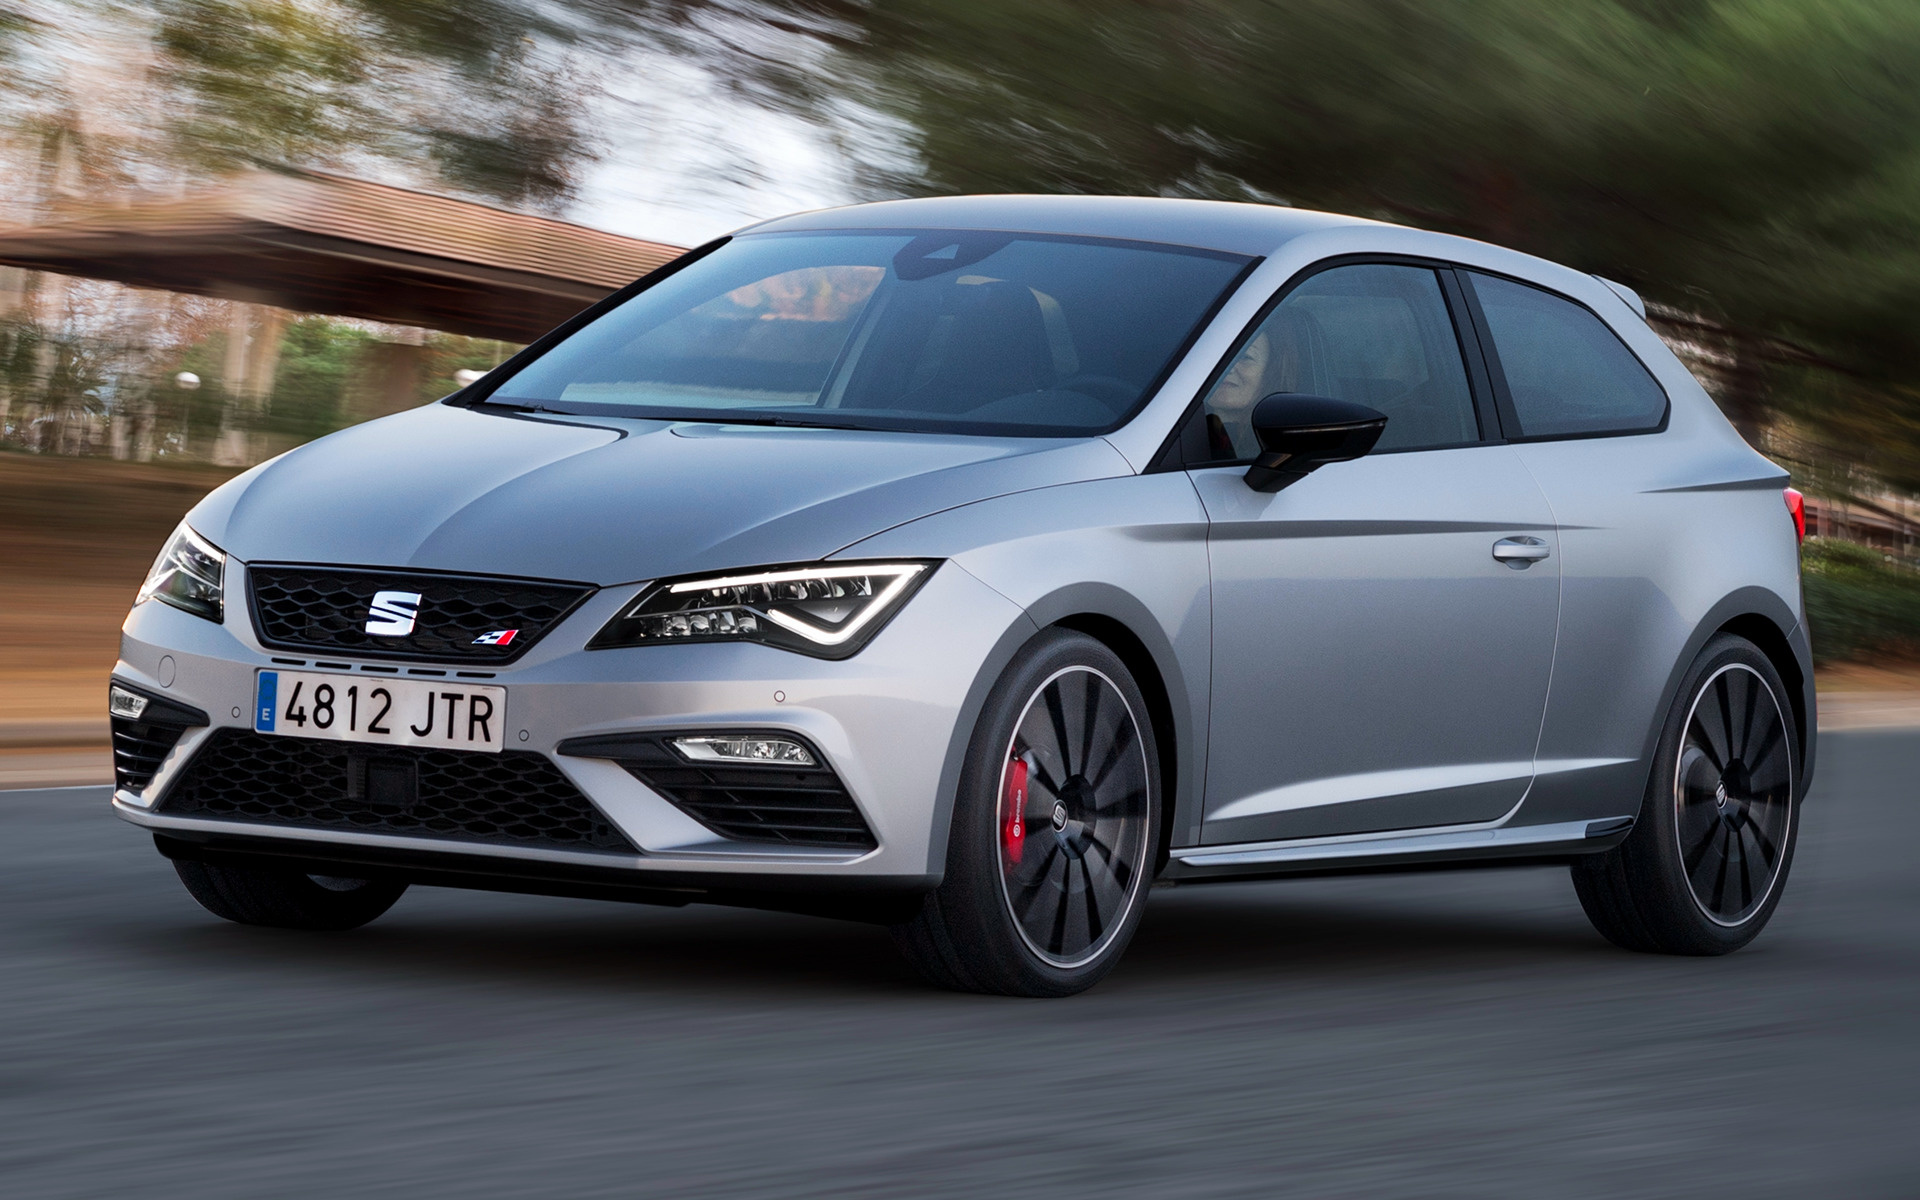 2017 Dodge Ram >> 2017 Seat Leon SC Cupra 300 - Wallpapers and HD Images | Car Pixel